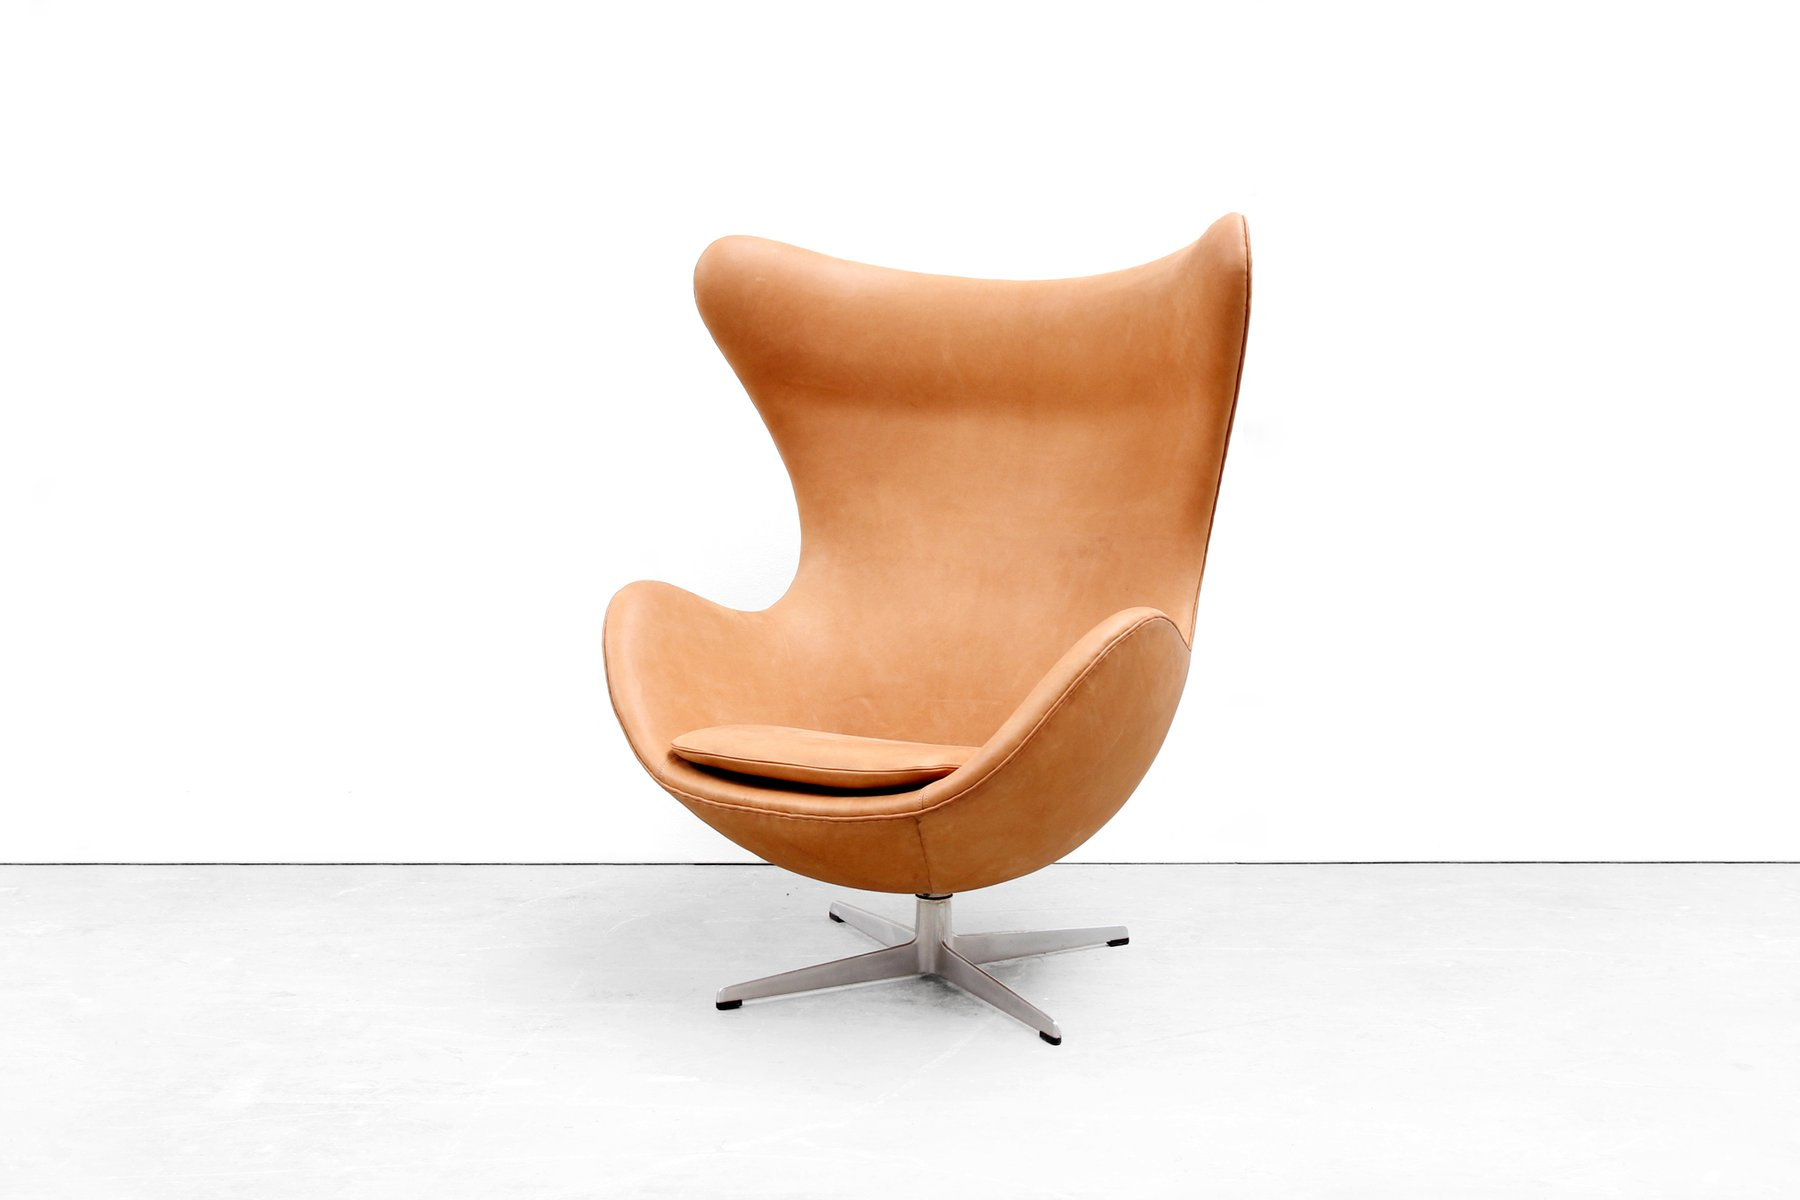 cognac leather egg chair by arne jacobsen for fritz hansen 1966 for sale at pamono. Black Bedroom Furniture Sets. Home Design Ideas